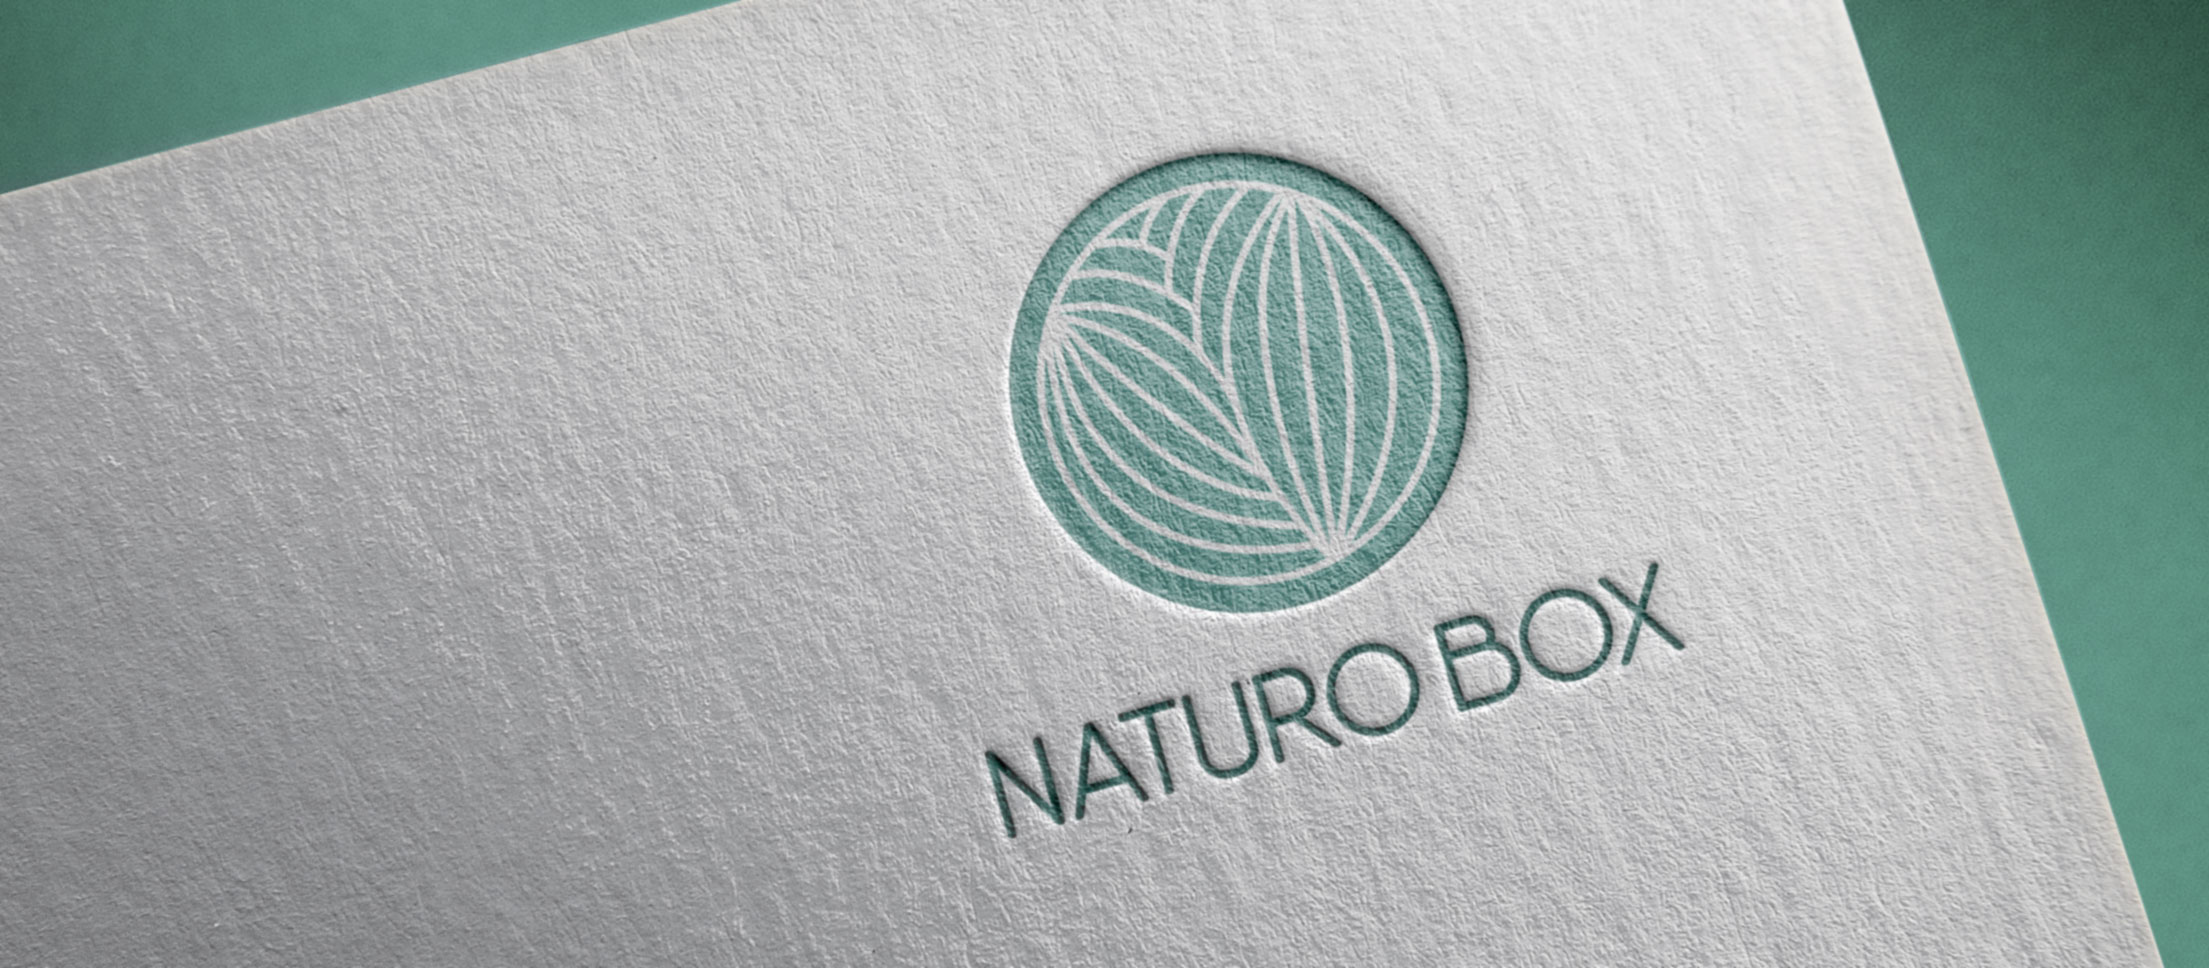 NaturoBox_logo Naturo Box